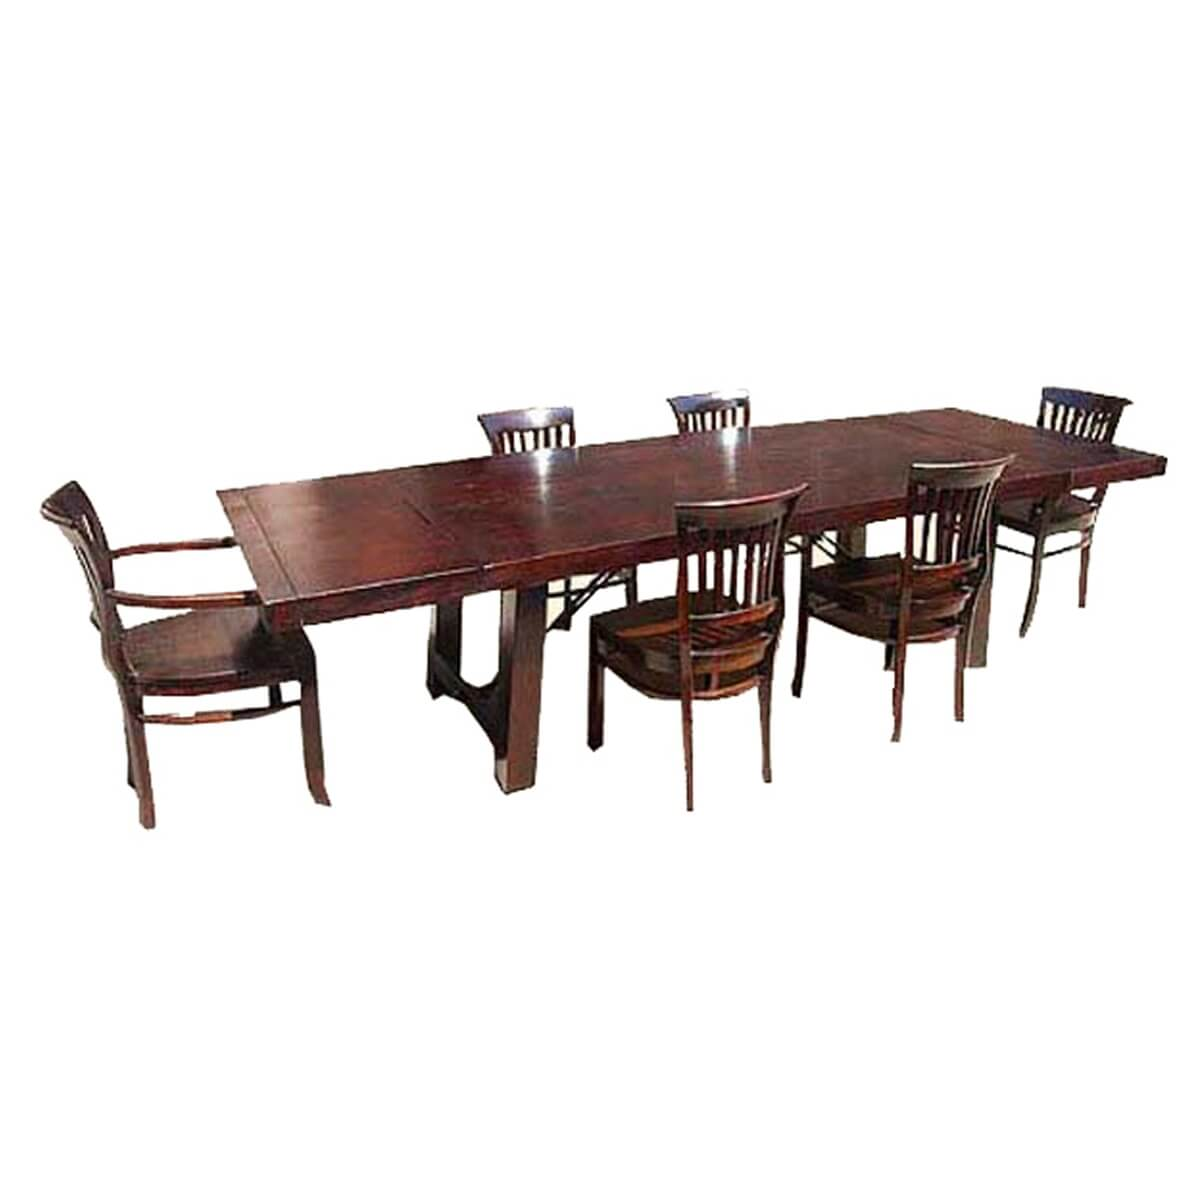 Nottingham rustic furniture wood dining table chair set for Furniture nottingham